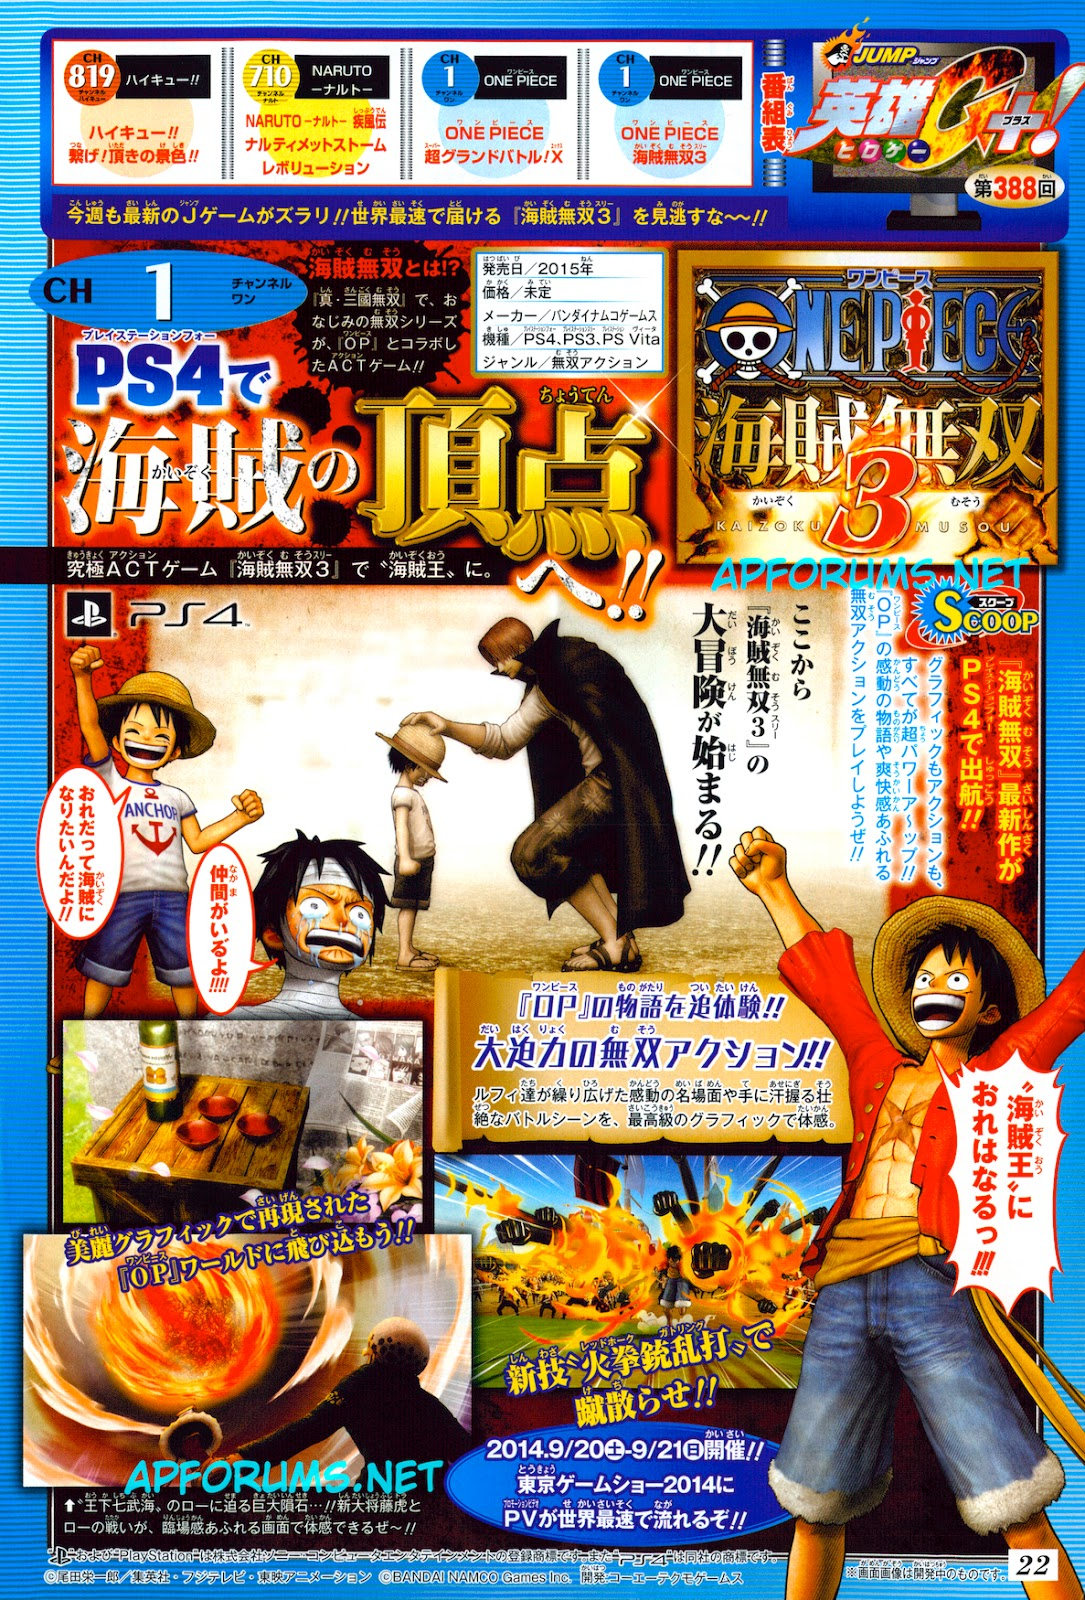 Actu Jeux Video, Bandai Namco, Jeux Video, One Piece : Pirate Warriors 3,